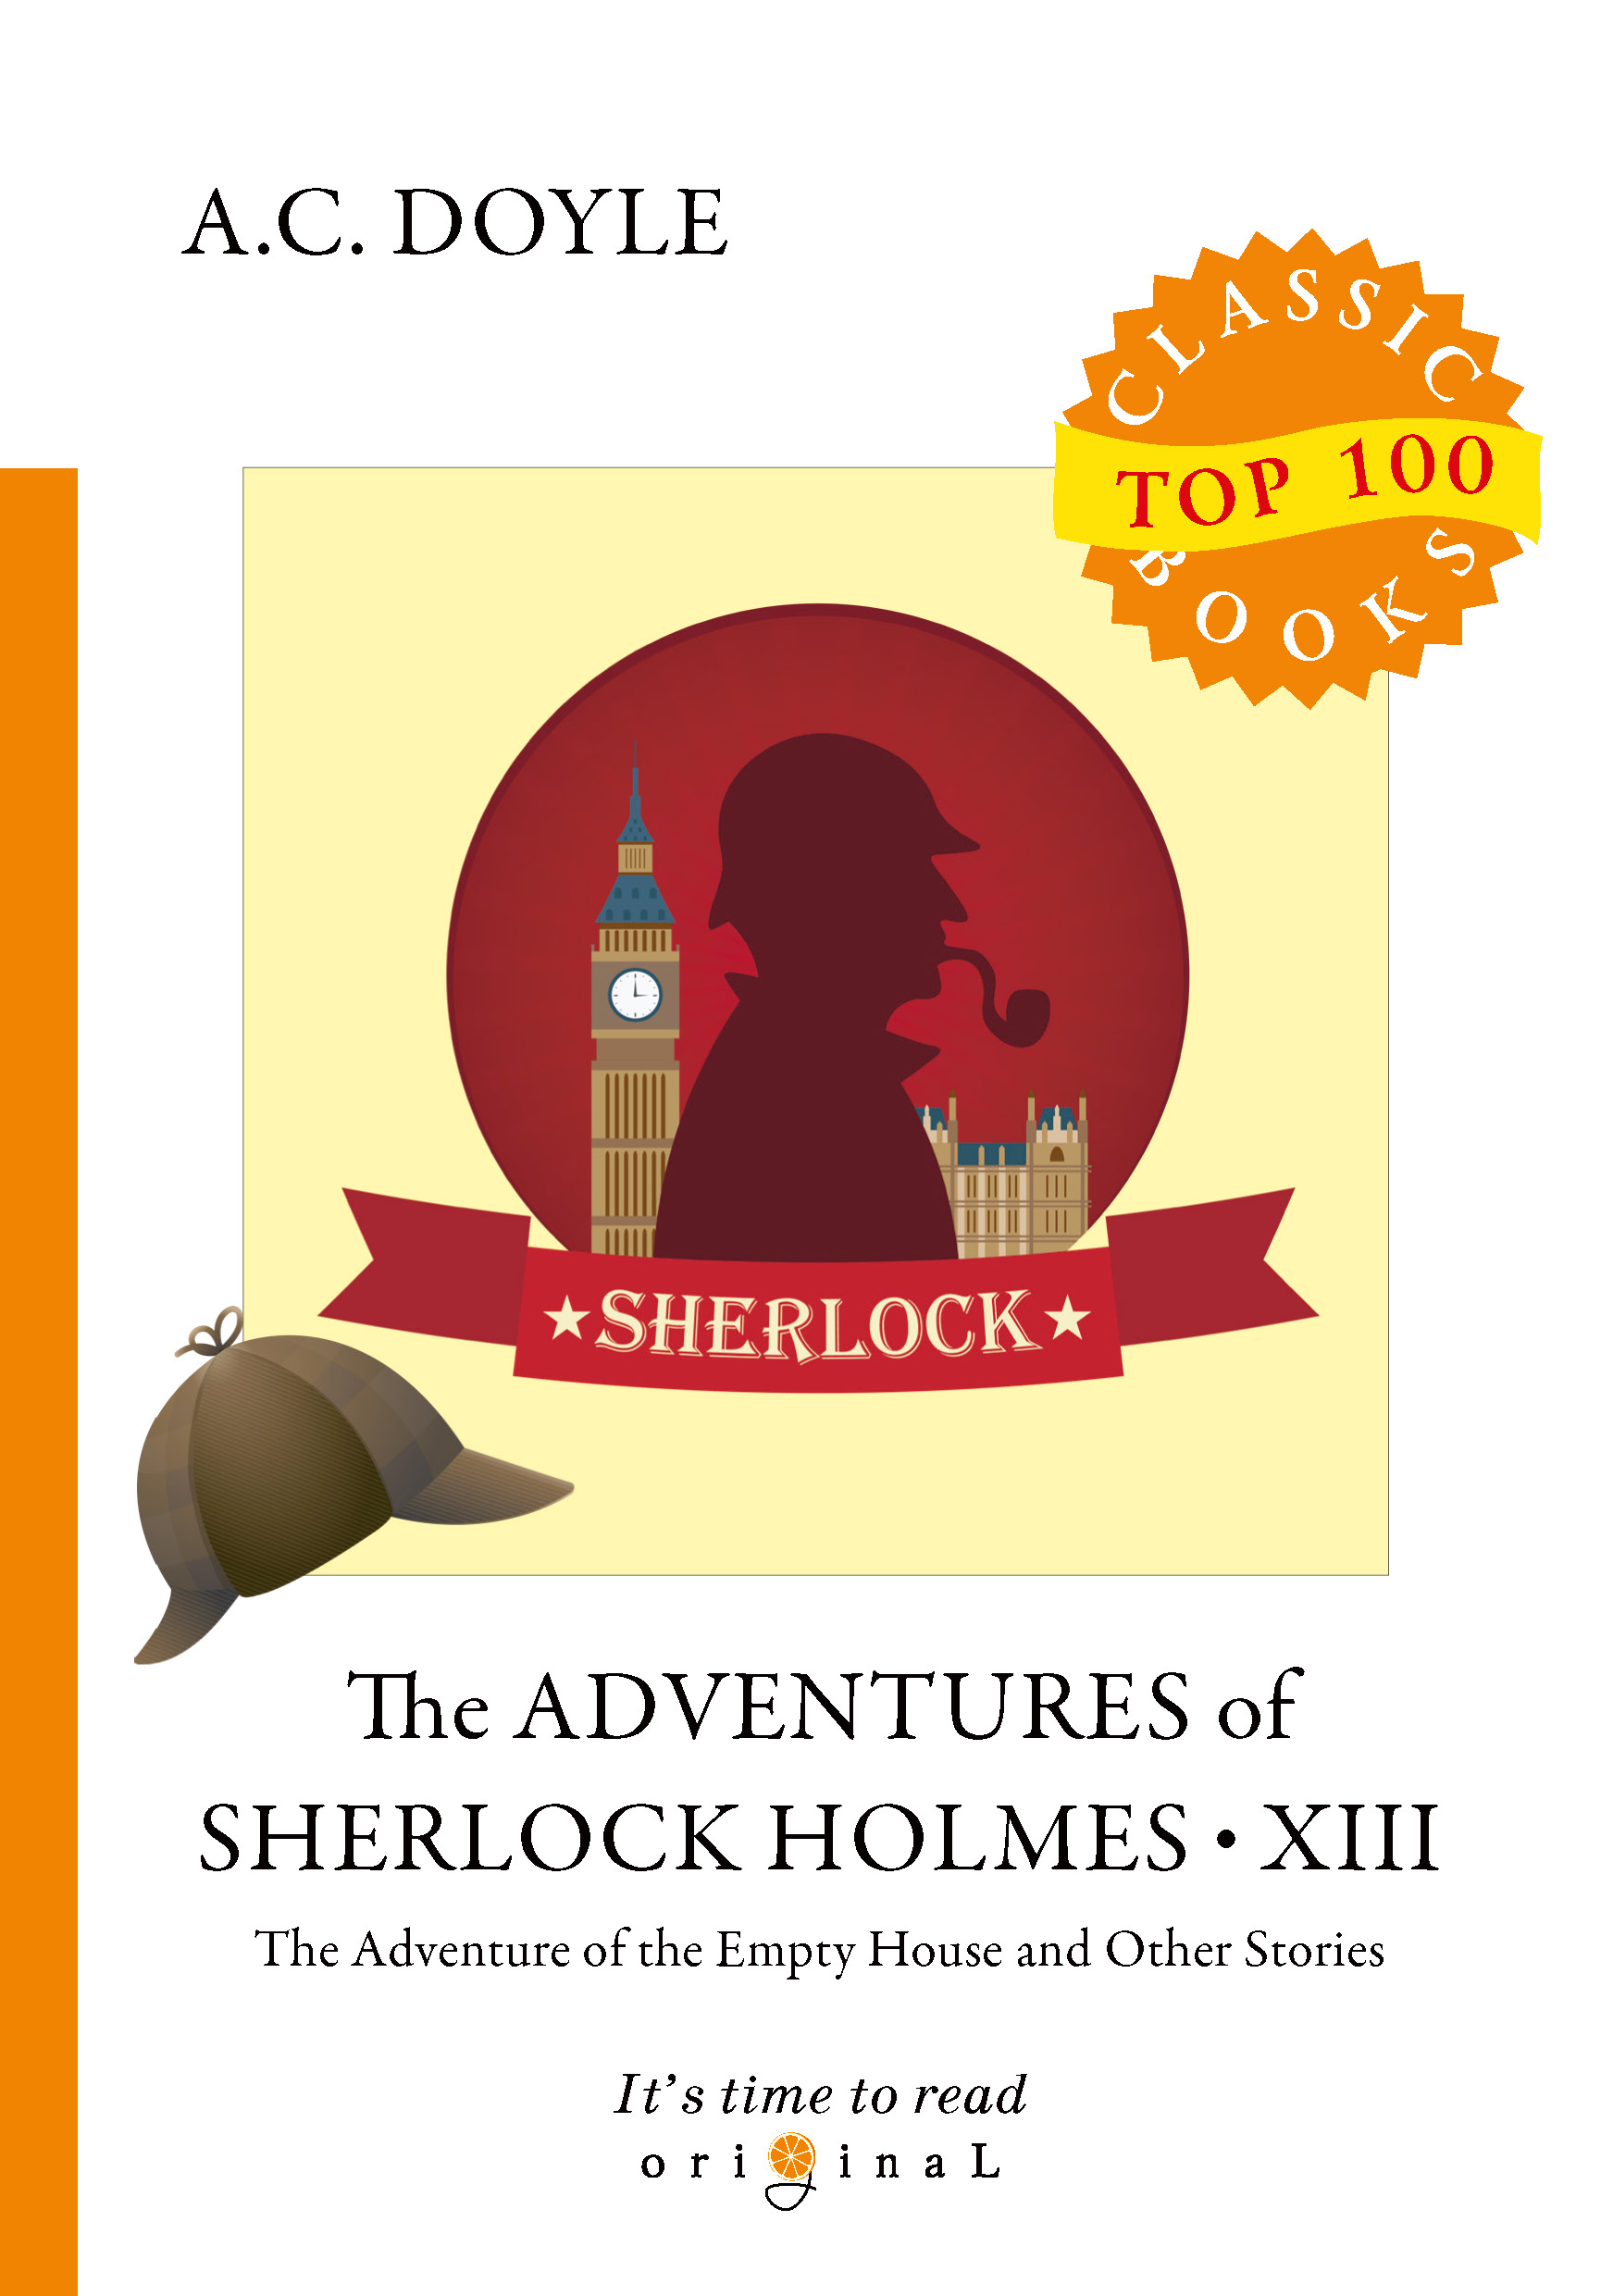 A. C. Doyle The Adventures of Sherlock Holmes XIII